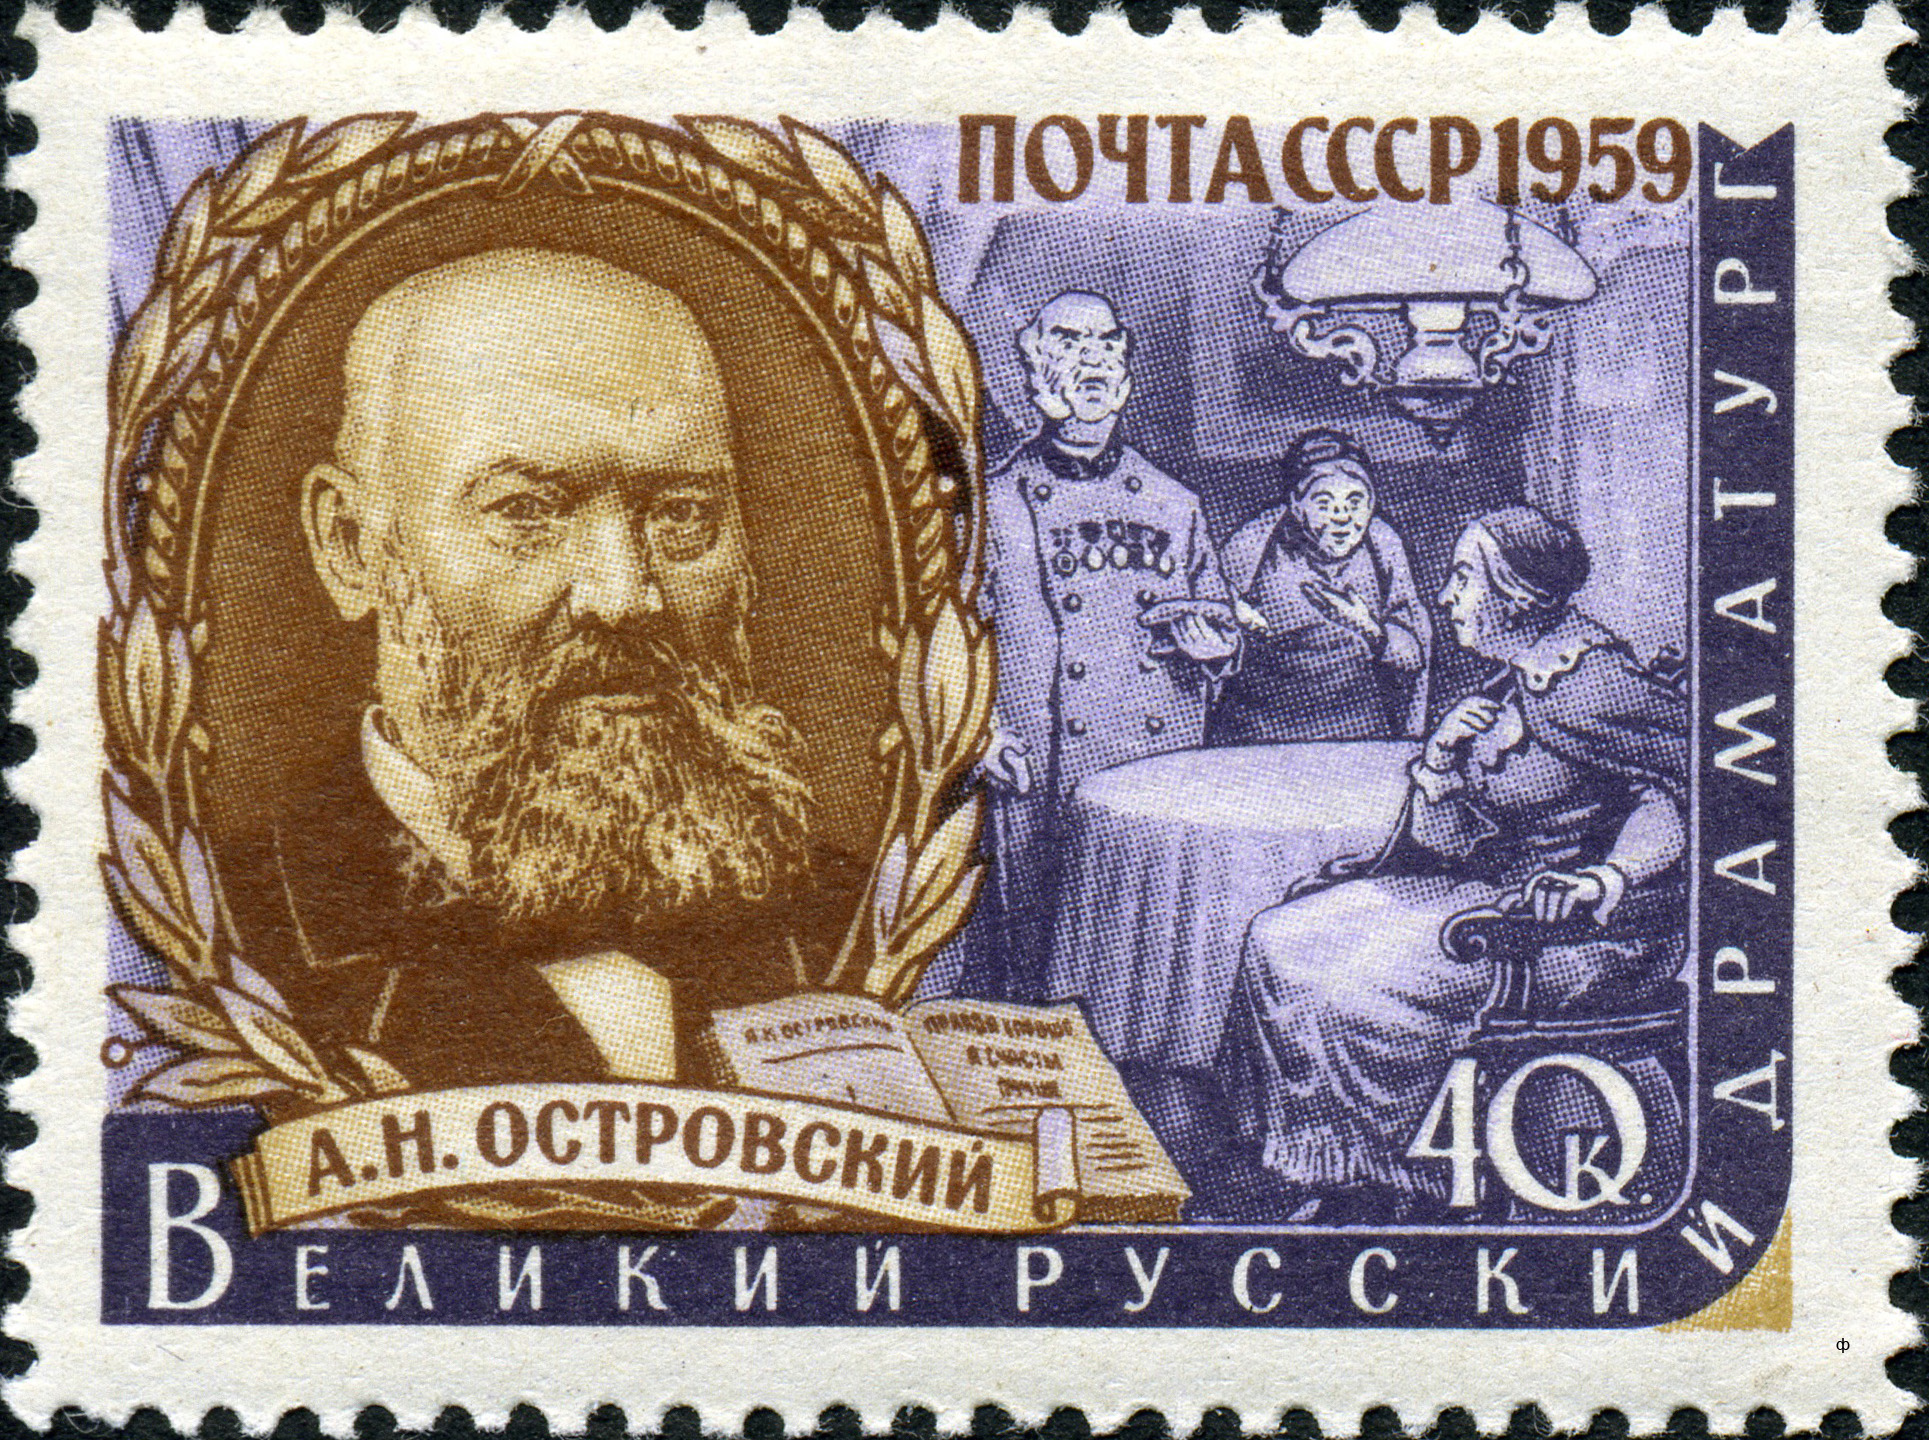 File:The Soviet Union 1959 CPA 2291 stamp (Alexander Ostrovsky and Scene  from his